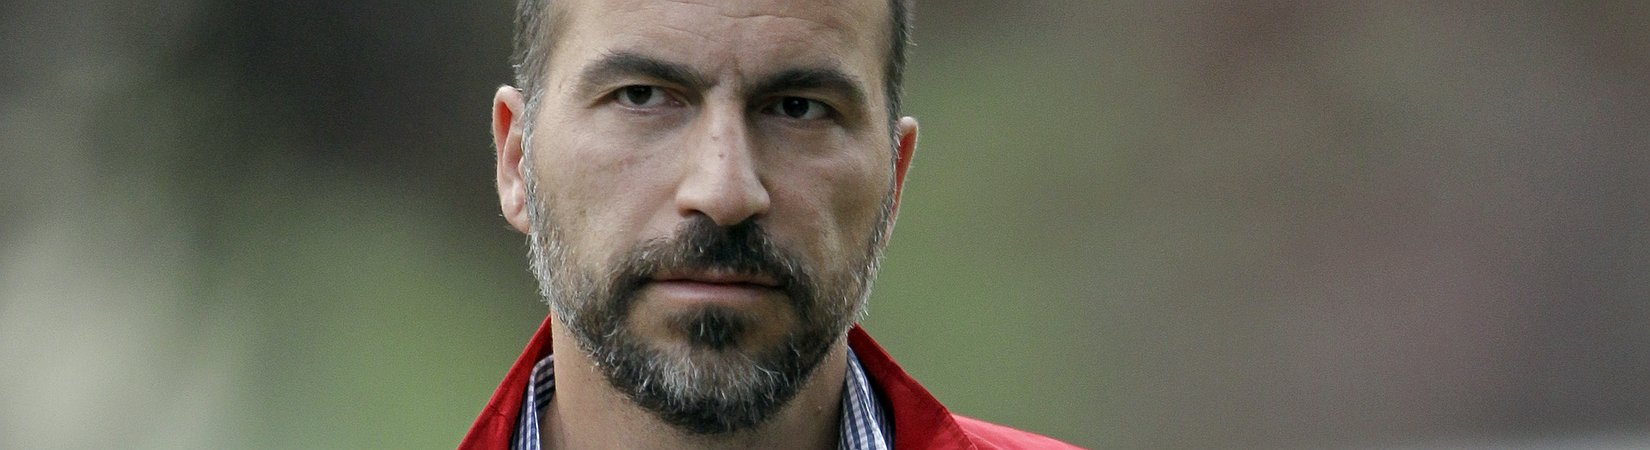 Uber offers Expedia CEO Dara Khosrowshahi to become its new leader